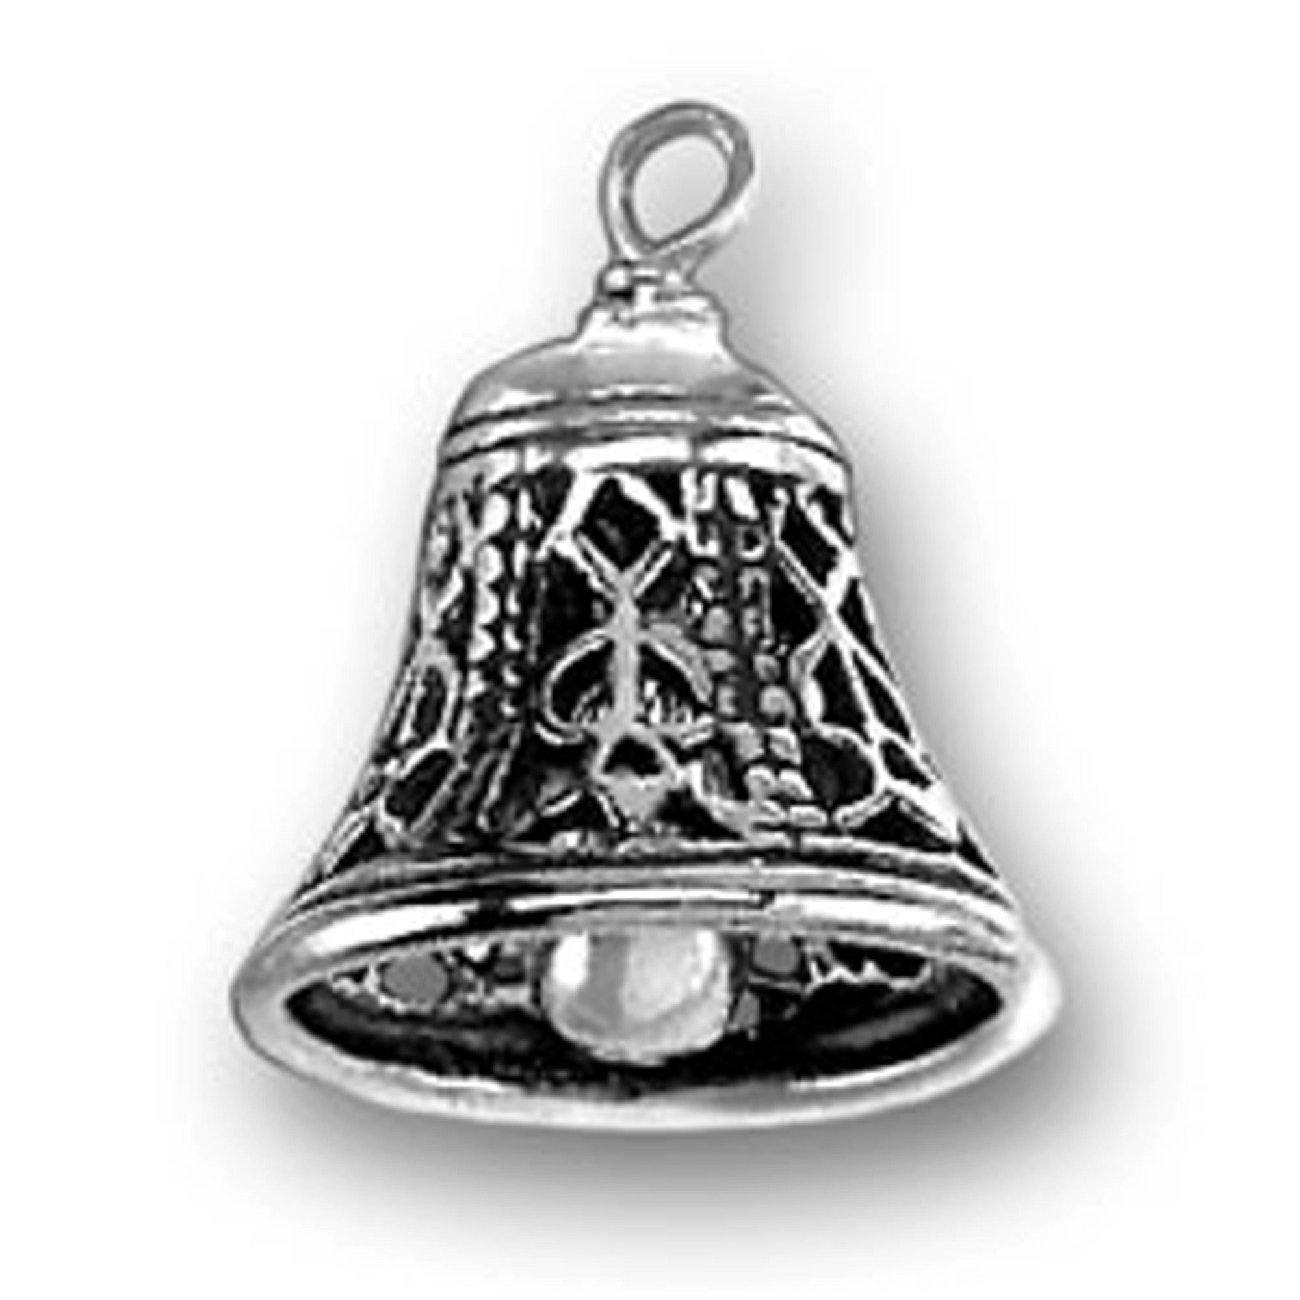 Sterling Silver Charm Bracelet With Attached 3D Sounding Moveable Clapper Filigree Bell Instrument Charm